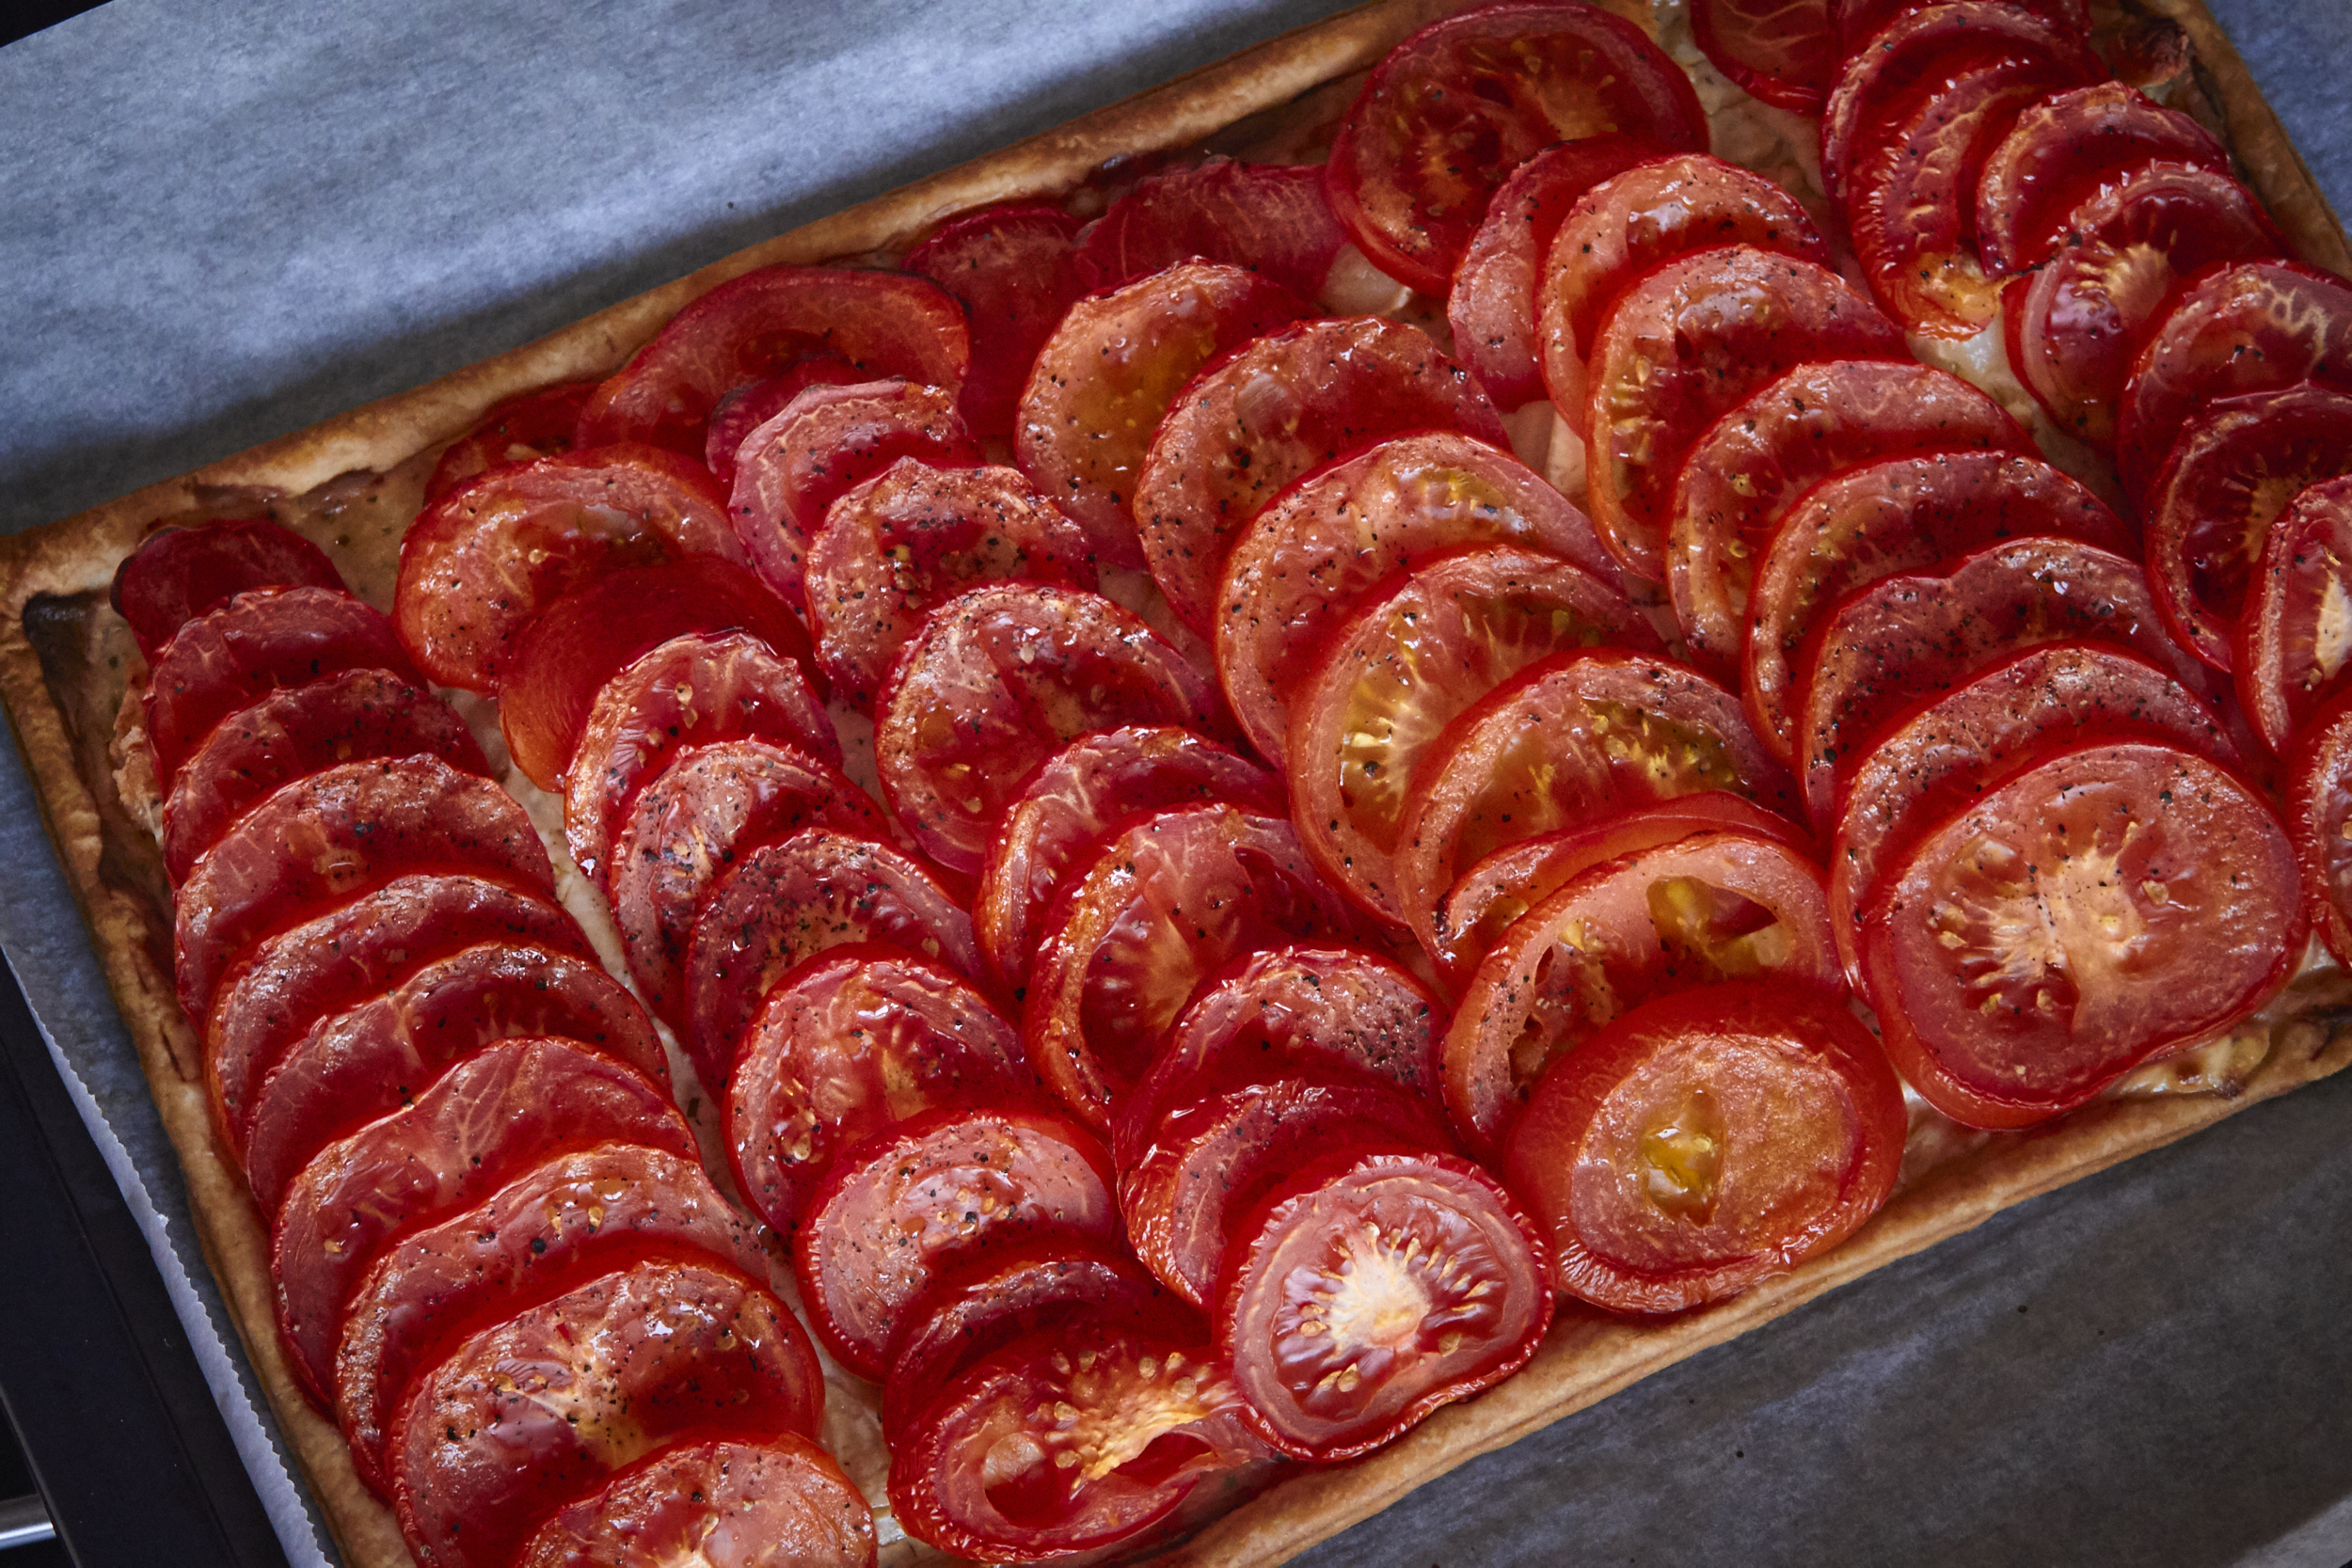 Tomato & Goat Cheese Tart - the tart right out of the oven with the beautiful roast tomatoes | In Carina's Kitchen